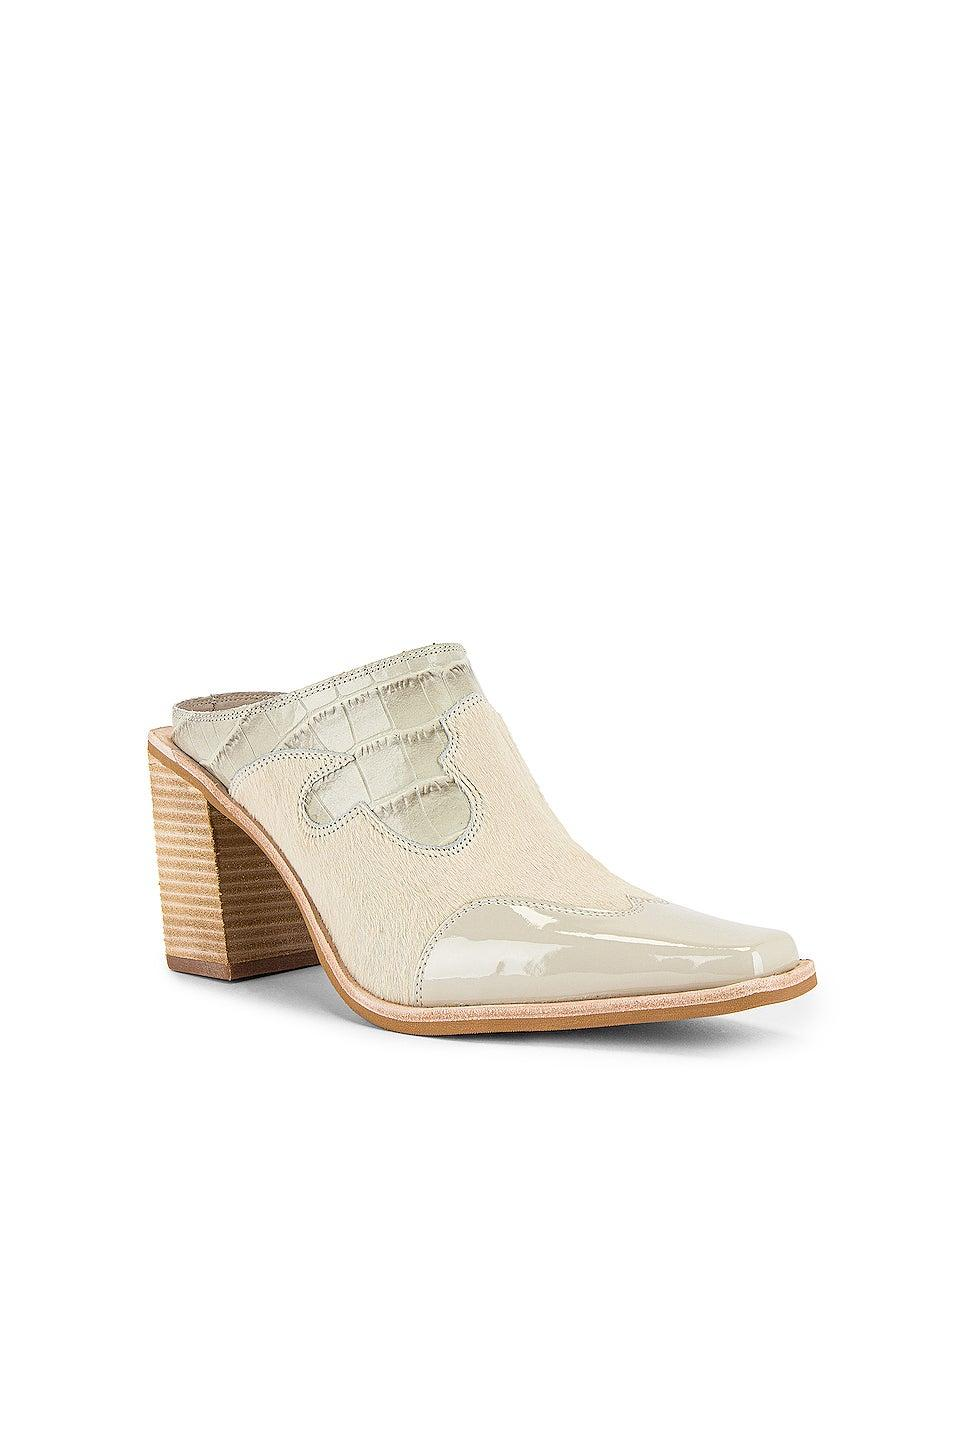 """<br><br><strong>Jeffrey Campbell</strong> Cowgirl Mule, $, available at <a href=""""https://go.skimresources.com/?id=30283X879131&url=https%3A%2F%2Fwww.revolve.com%2Fjeffrey-campbell-cowgirl-mule%2Fdp%2FJCAM-WZ1056%2F"""" rel=""""nofollow noopener"""" target=""""_blank"""" data-ylk=""""slk:Revolve"""" class=""""link rapid-noclick-resp"""">Revolve</a>"""